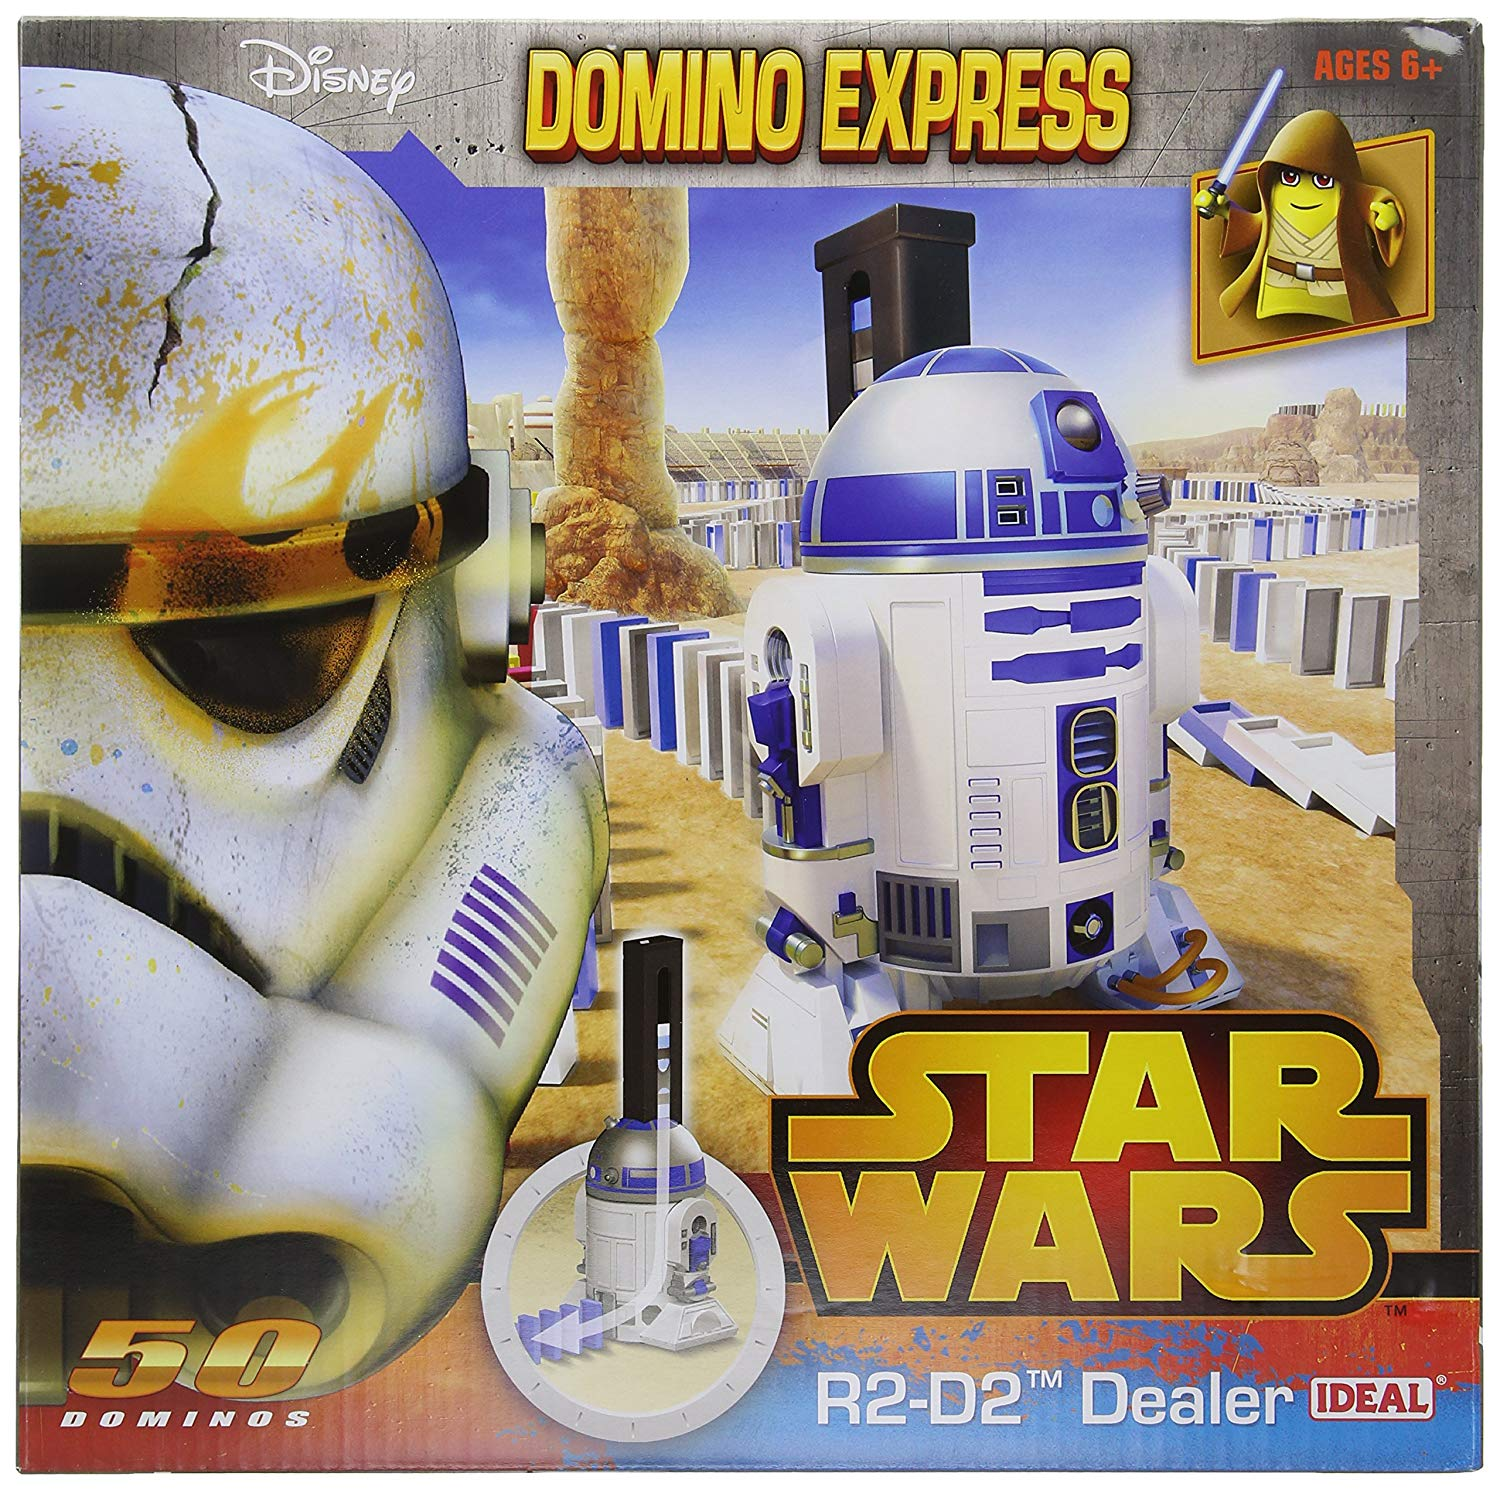 Domino Express Star Wars R2D2 Auto Dealer (50 pcs)